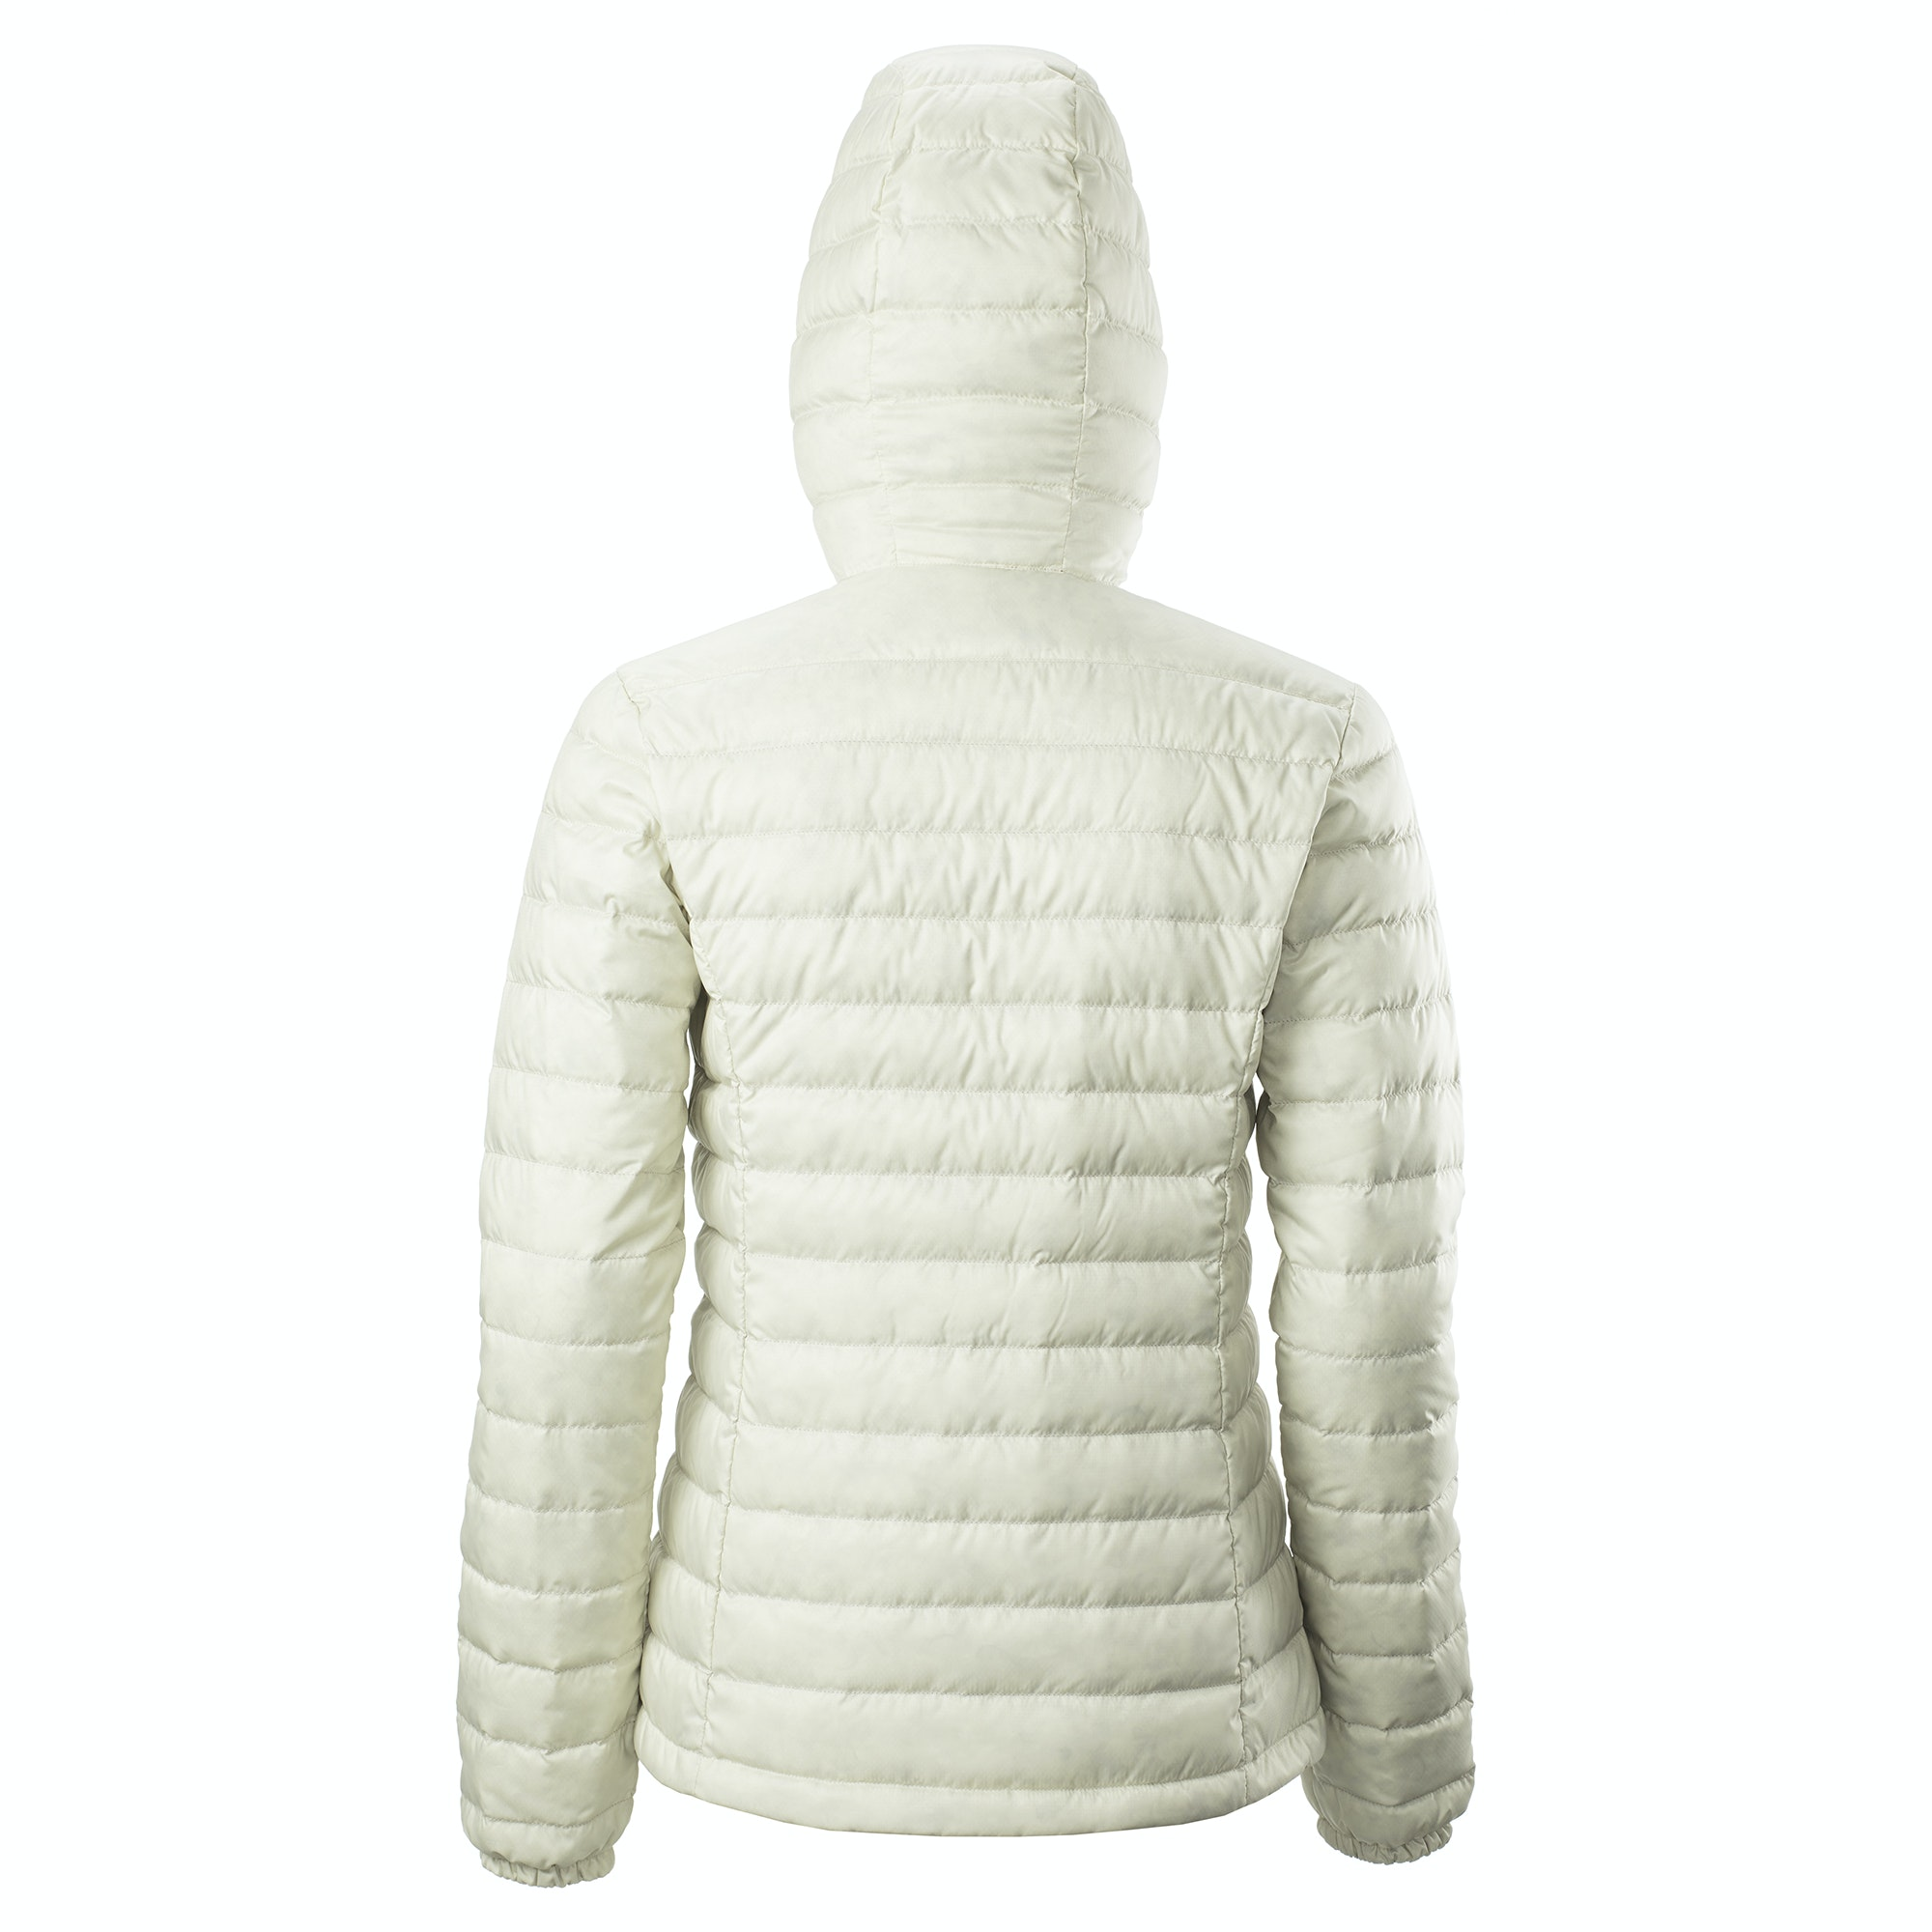 NEW-Kathmandu-Heli-Hooded-Lightweight-Compact-Water-Repellent-Warm-Women-Down thumbnail 14